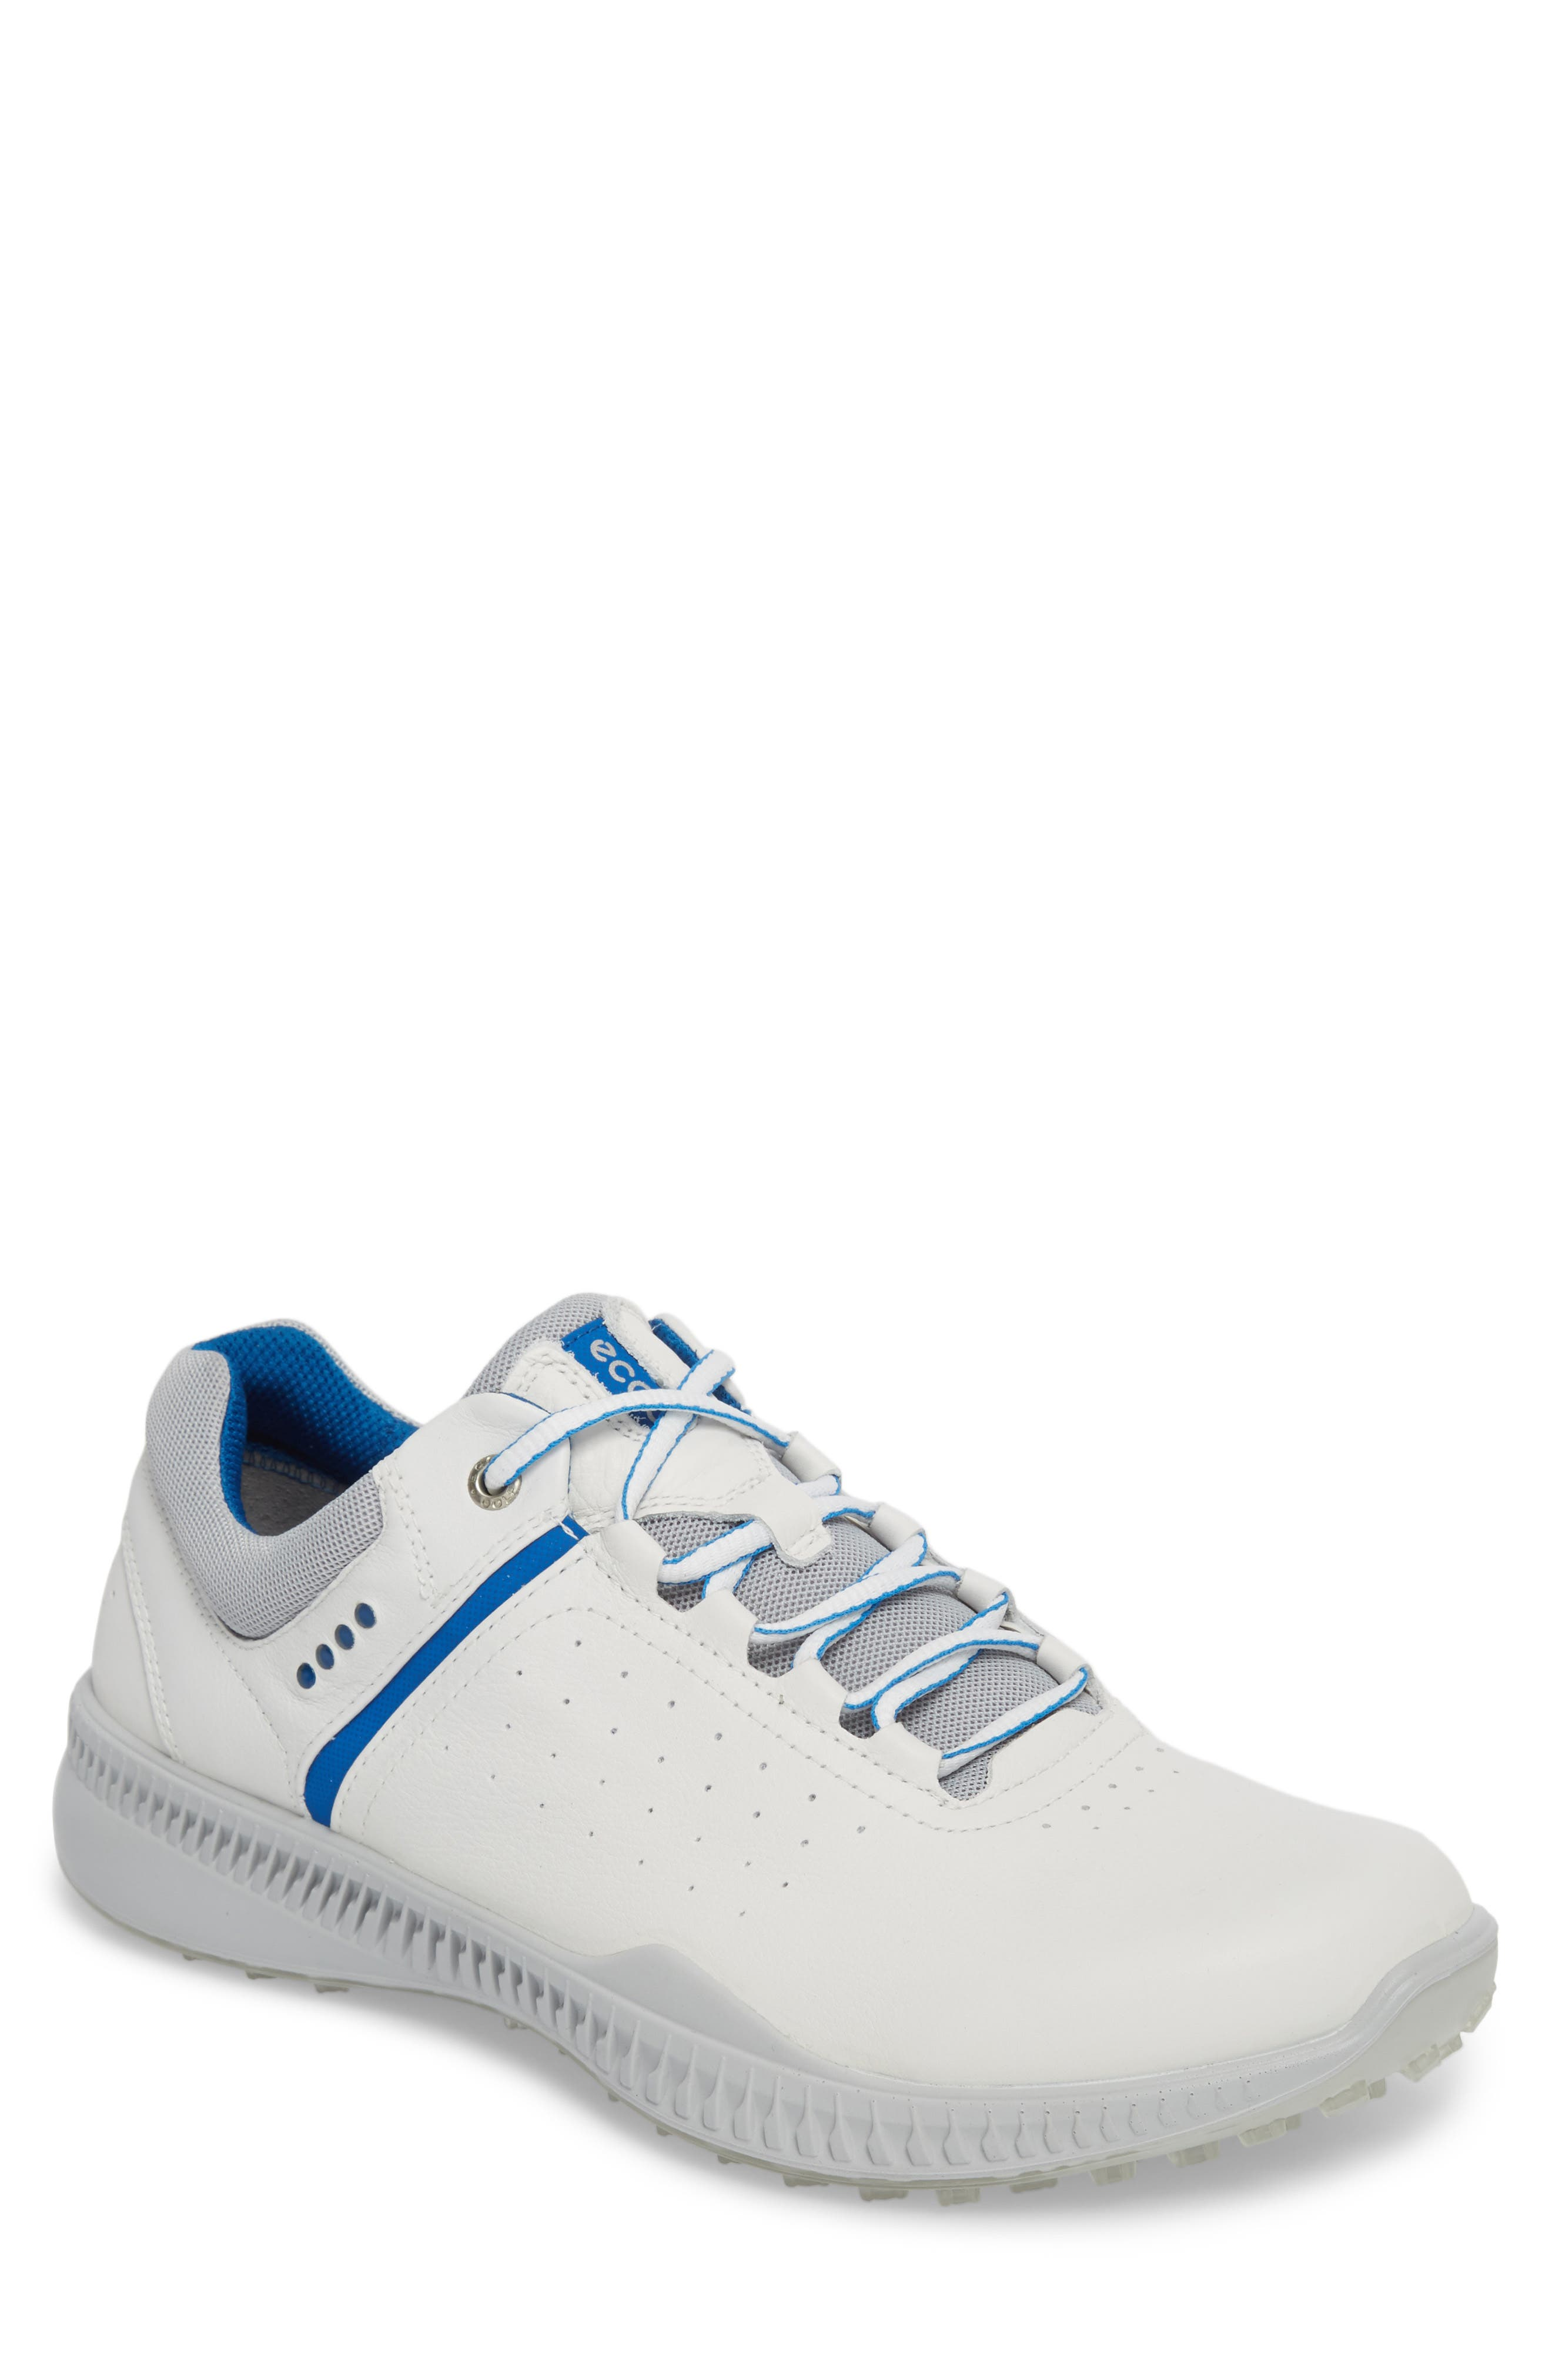 S-Drive Water Repellent Golf Shoe,                         Main,                         color, White Leather